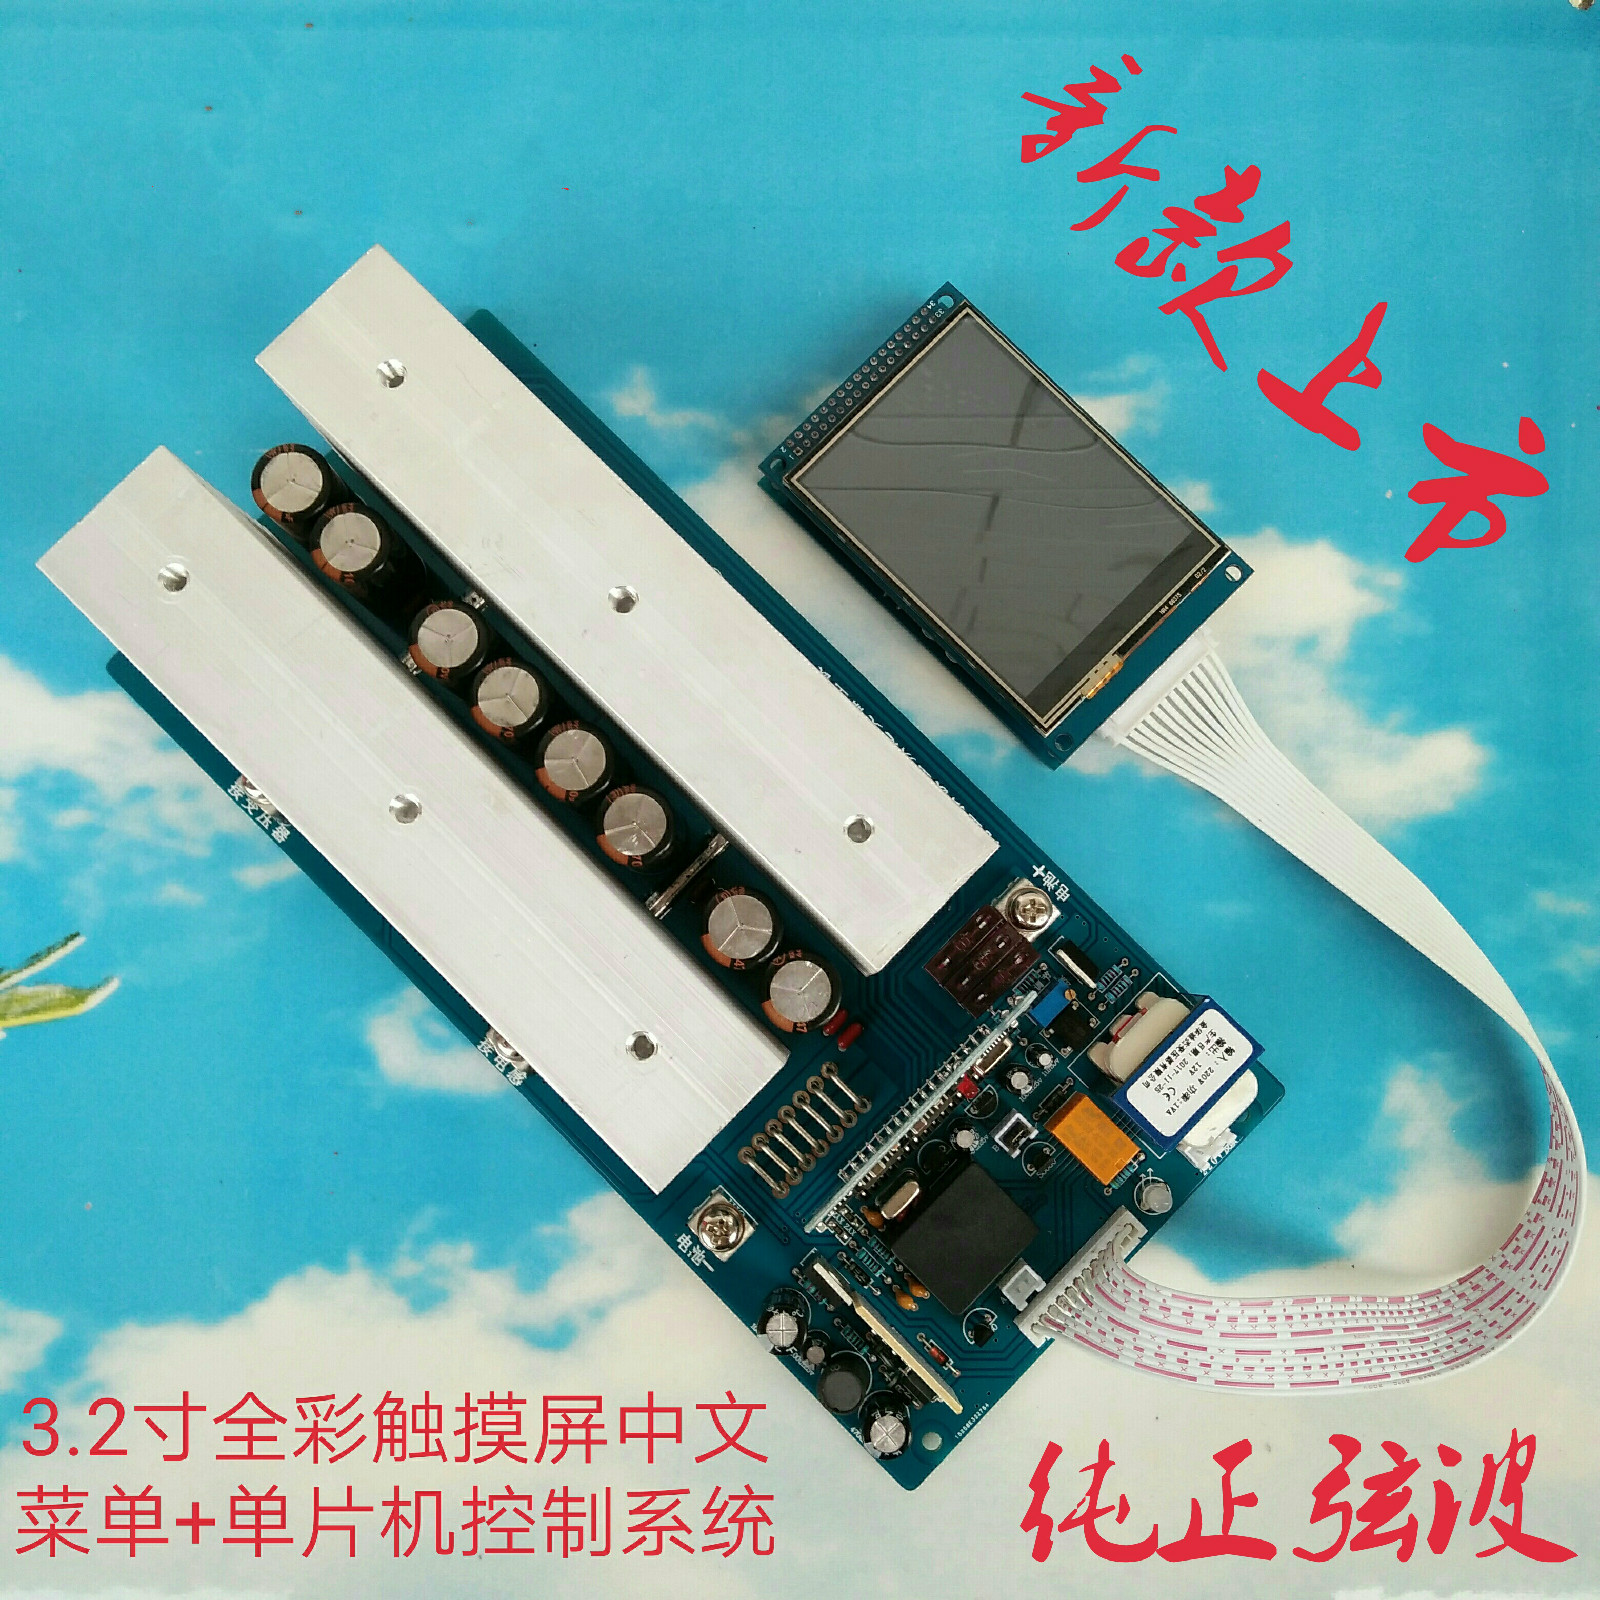 New MCU + Touch-screen LCD Pure Sine Wave Power Frequency Inverter Main Board 48V/60V5 Kw lcd screen inverter board for hp dv5000 laptops